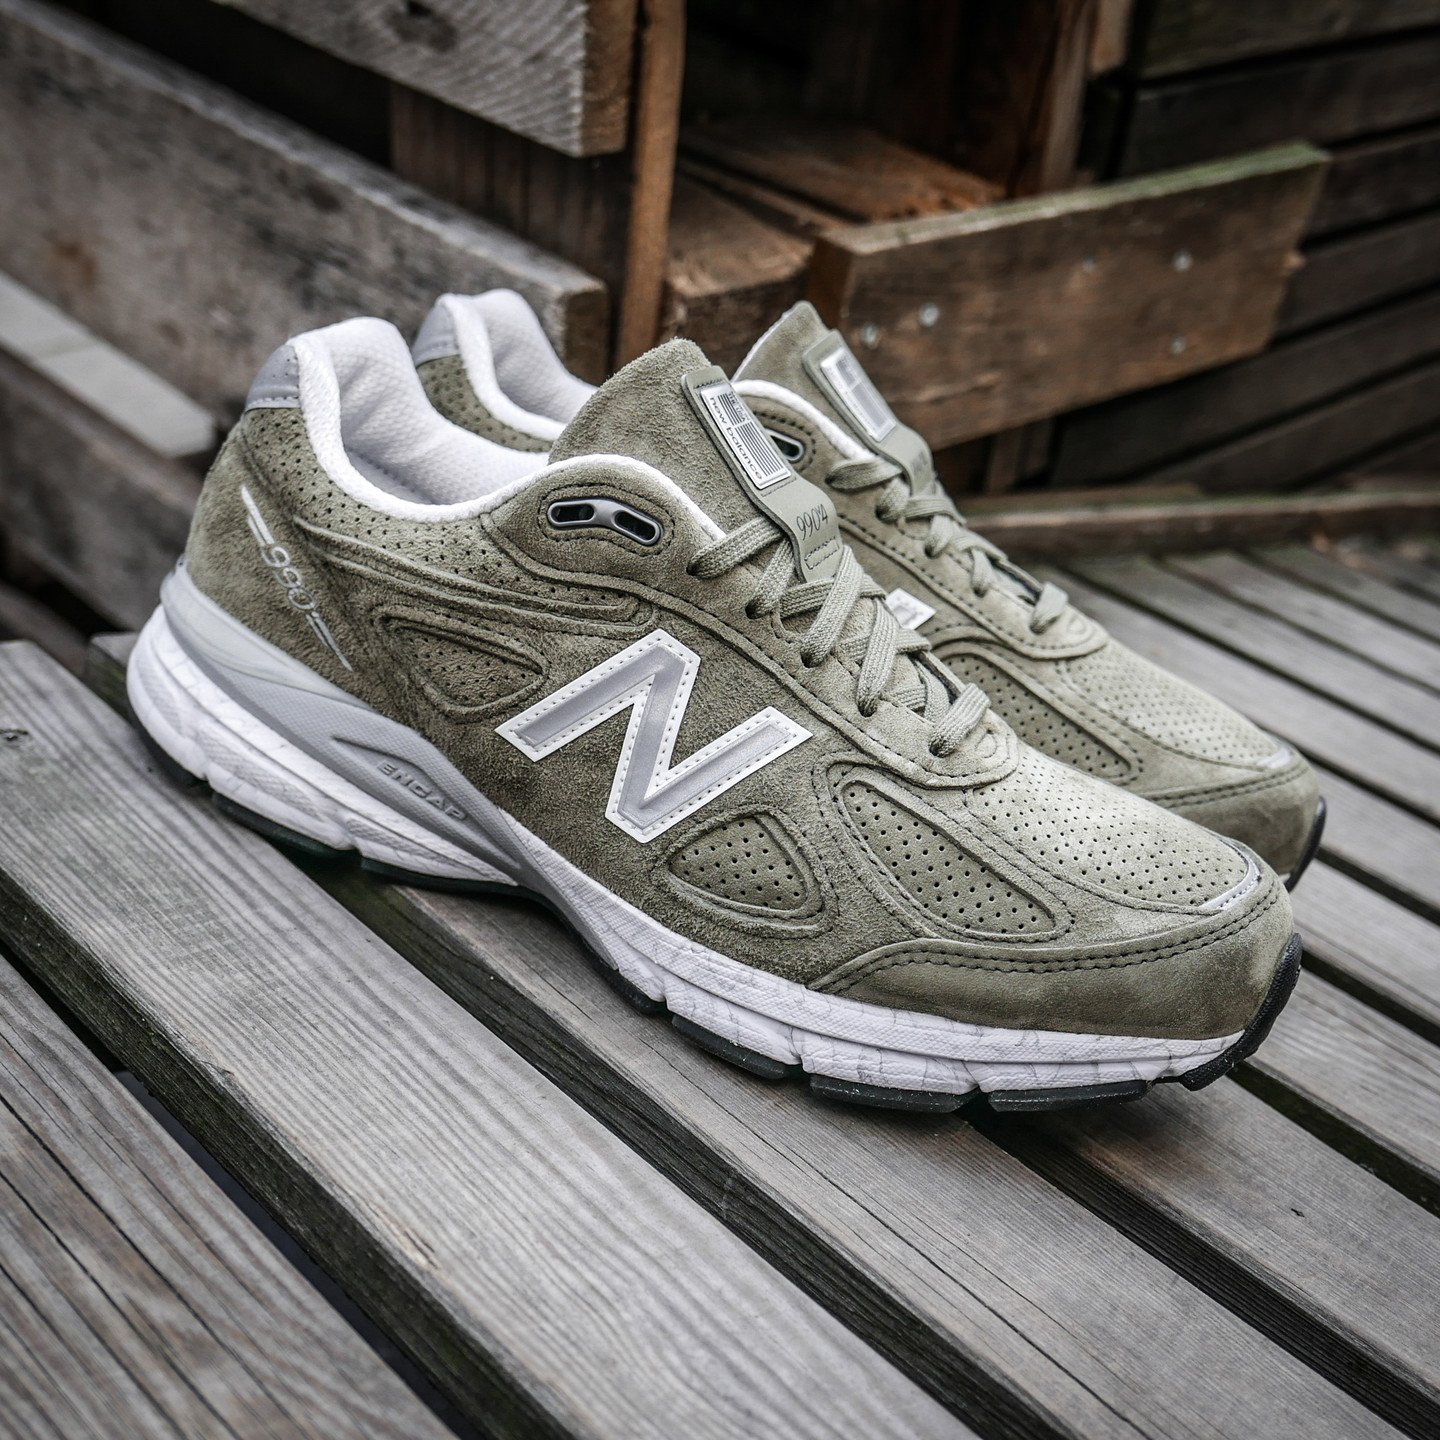 New Balance M990 V4 - Made in USA Olive Green / Marble White M990V4CG4